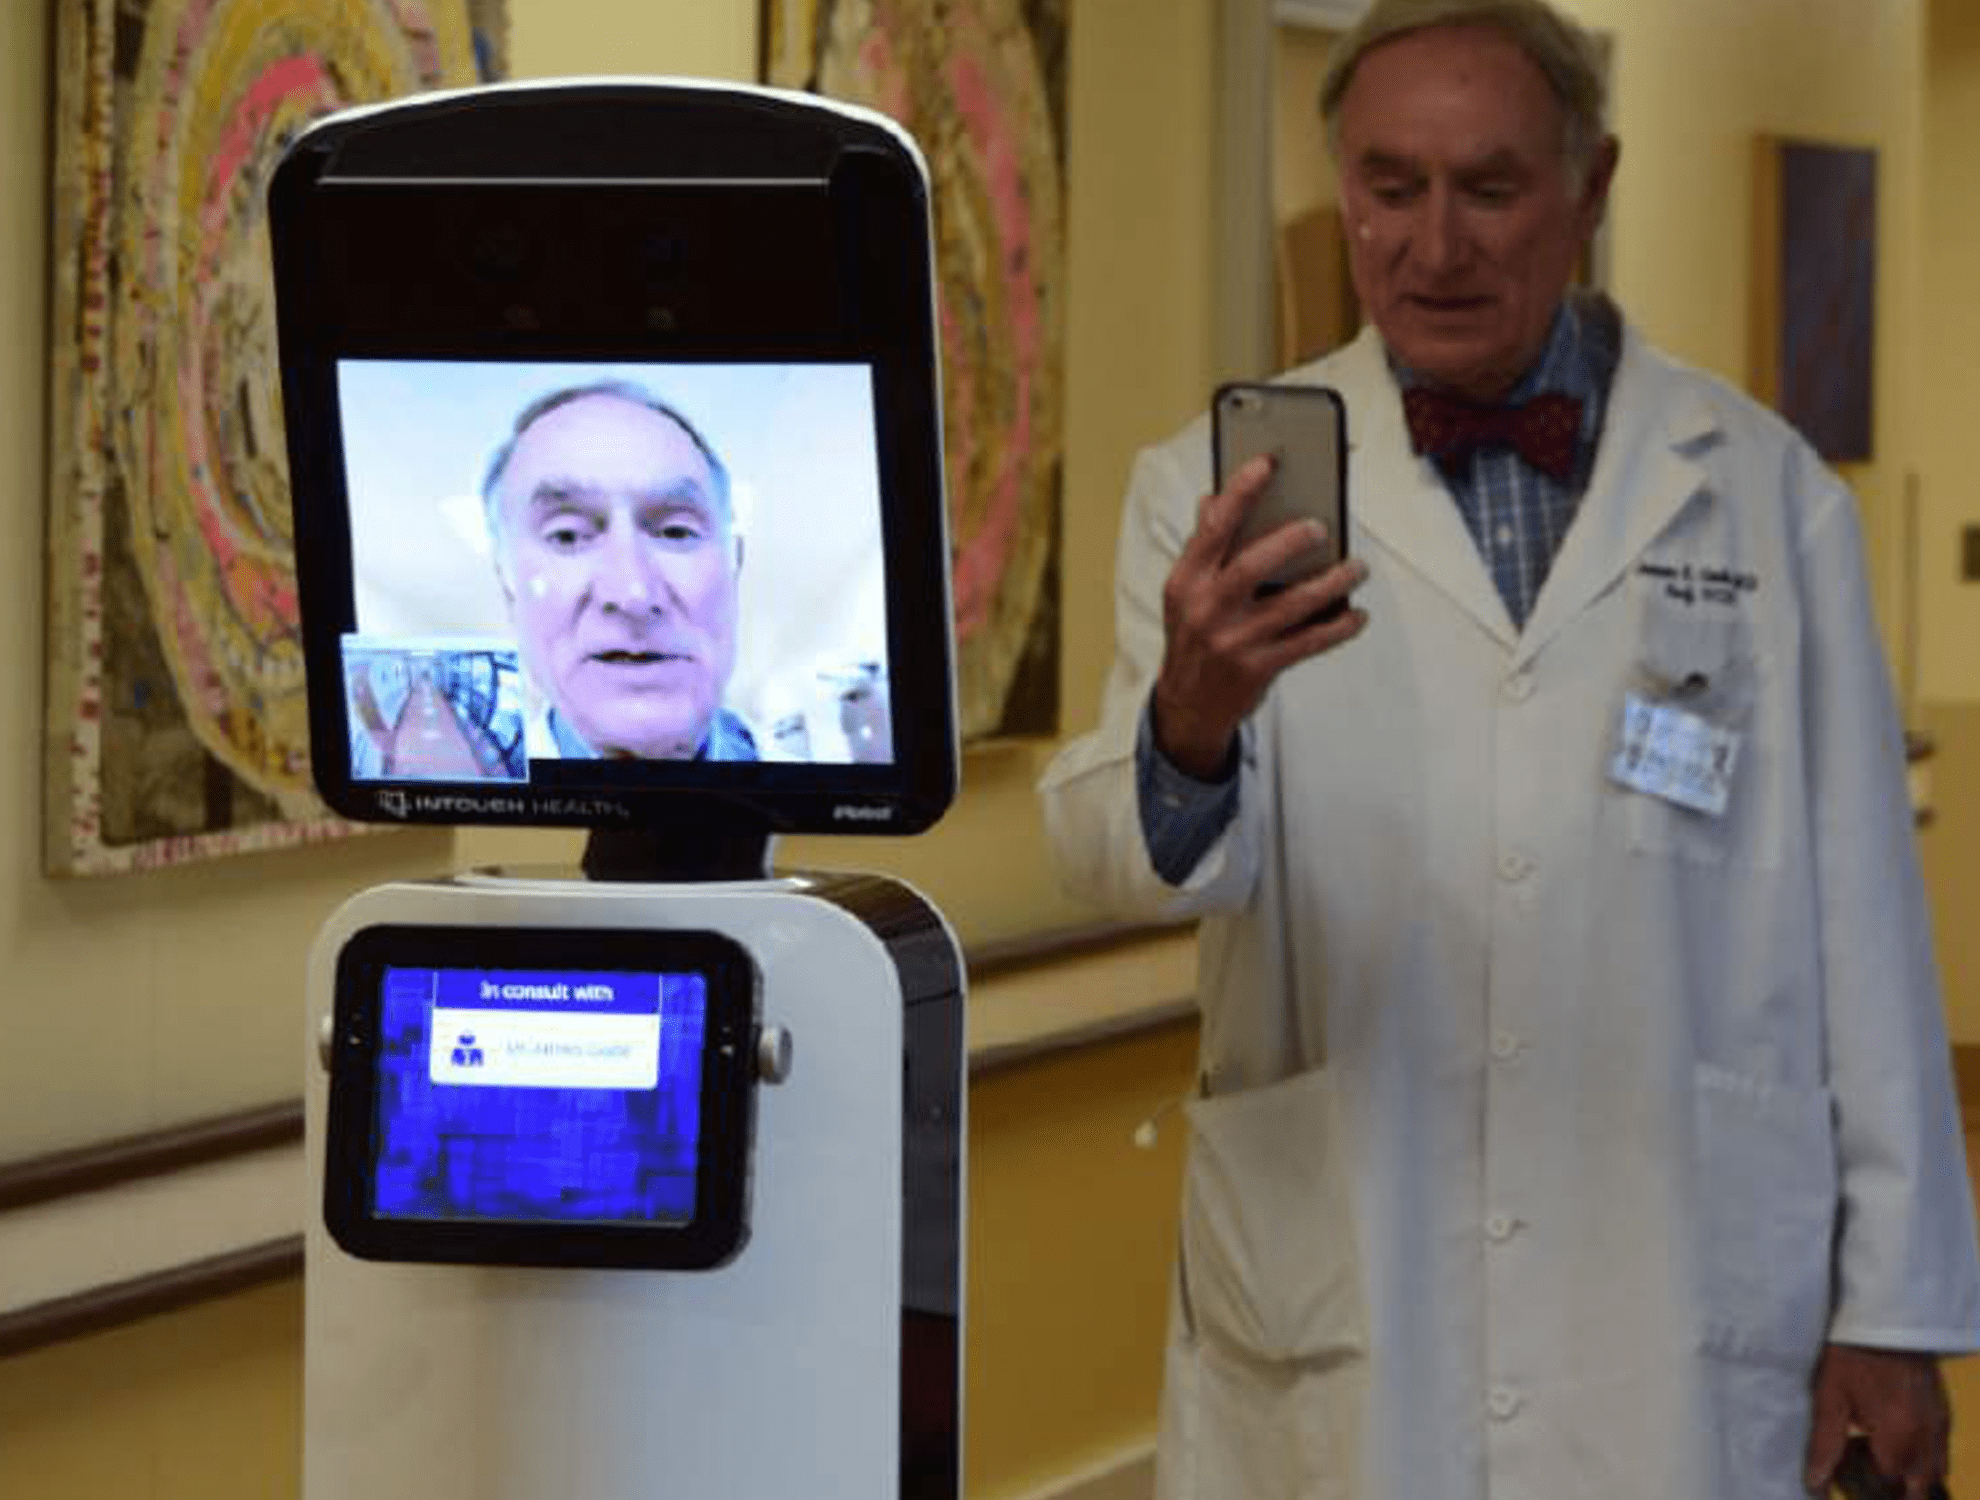 Dr. Jim Gude and Robot